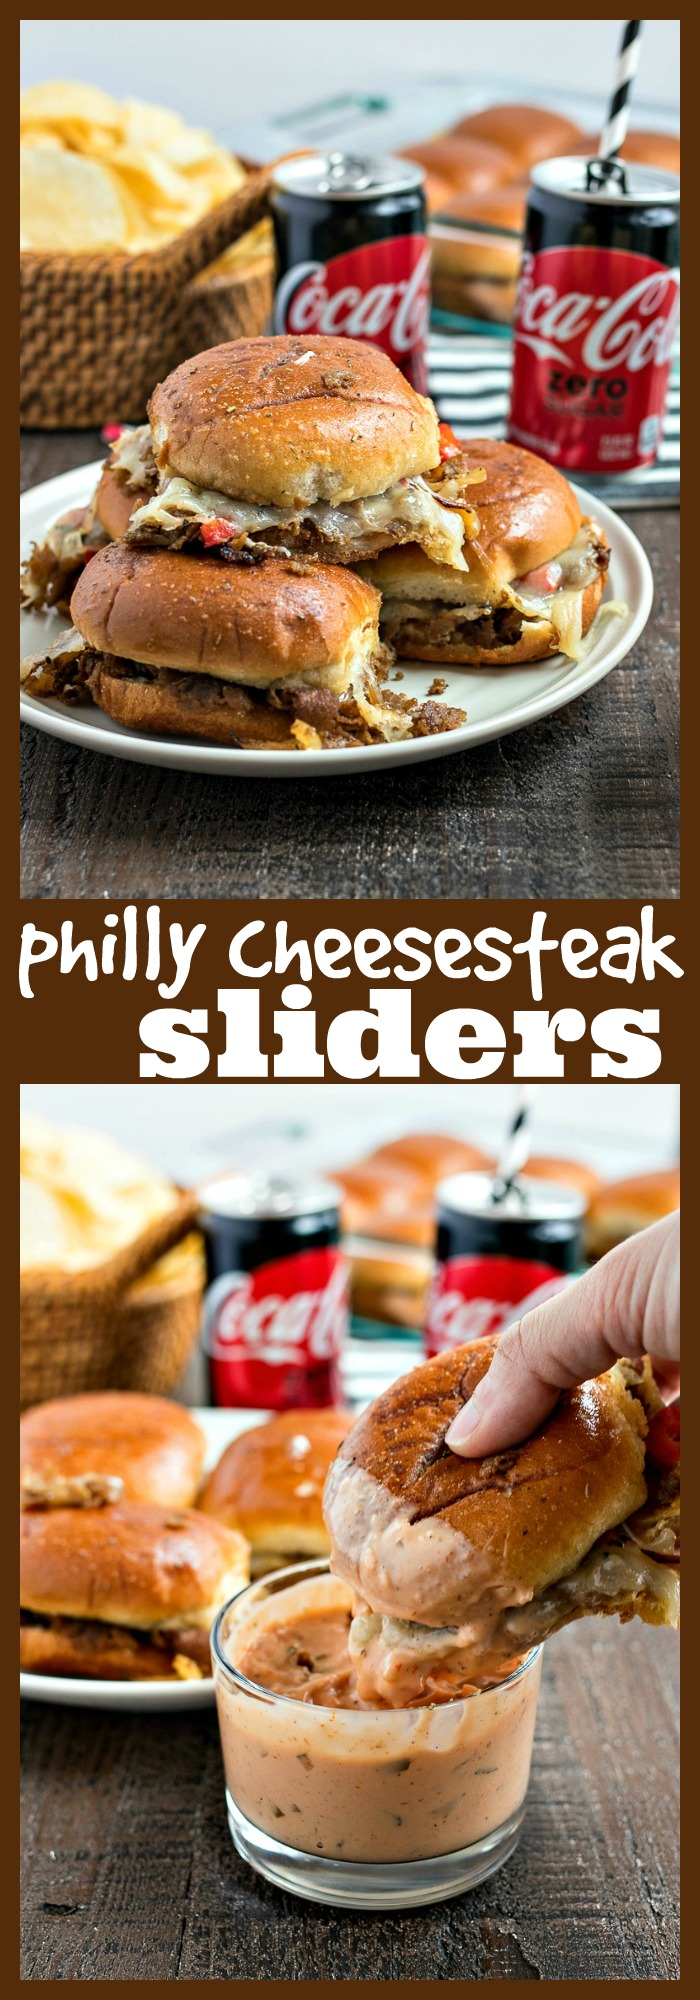 Philly Cheesesteak Sliders photo collage